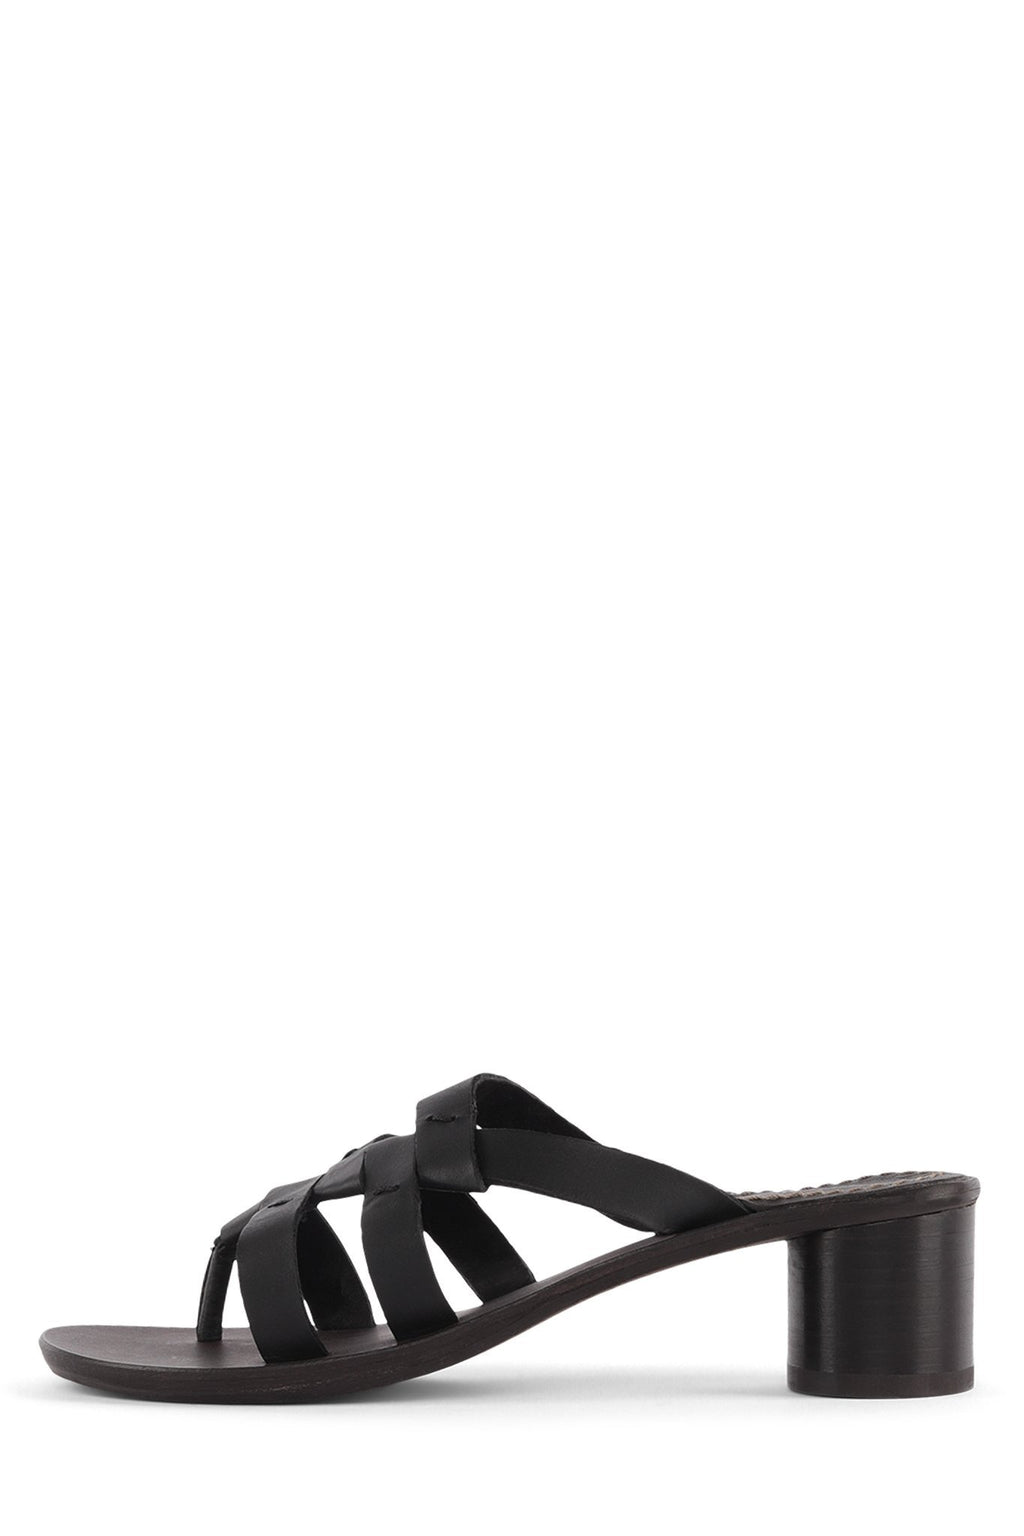 ROZALINE Heeled Sandal Jeffrey Campbell Black 6